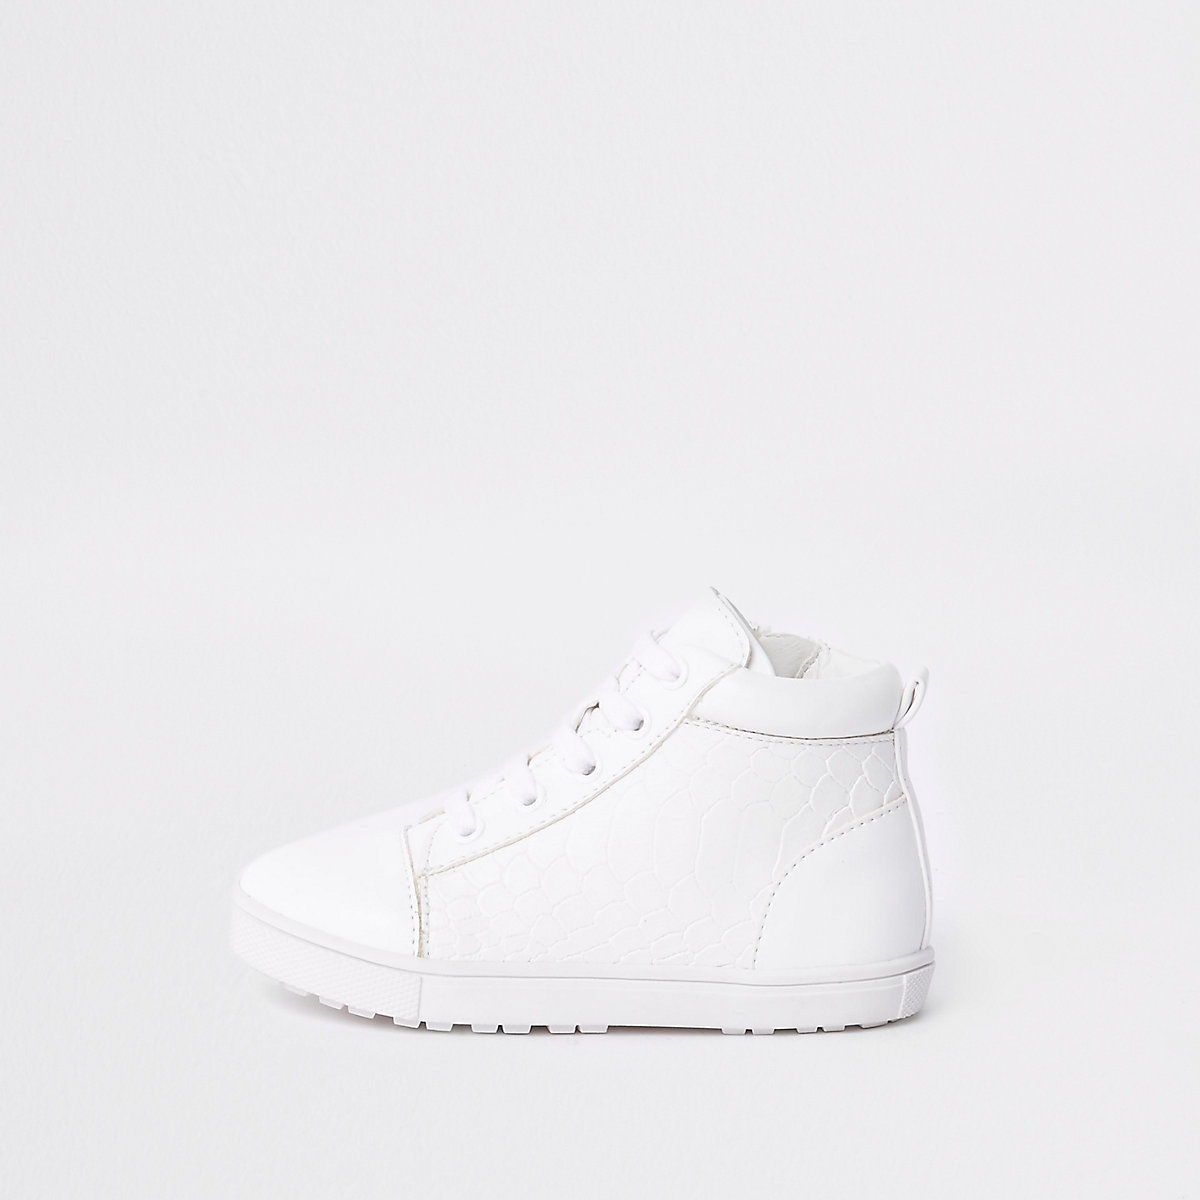 Mini boys white croc high top sneakers